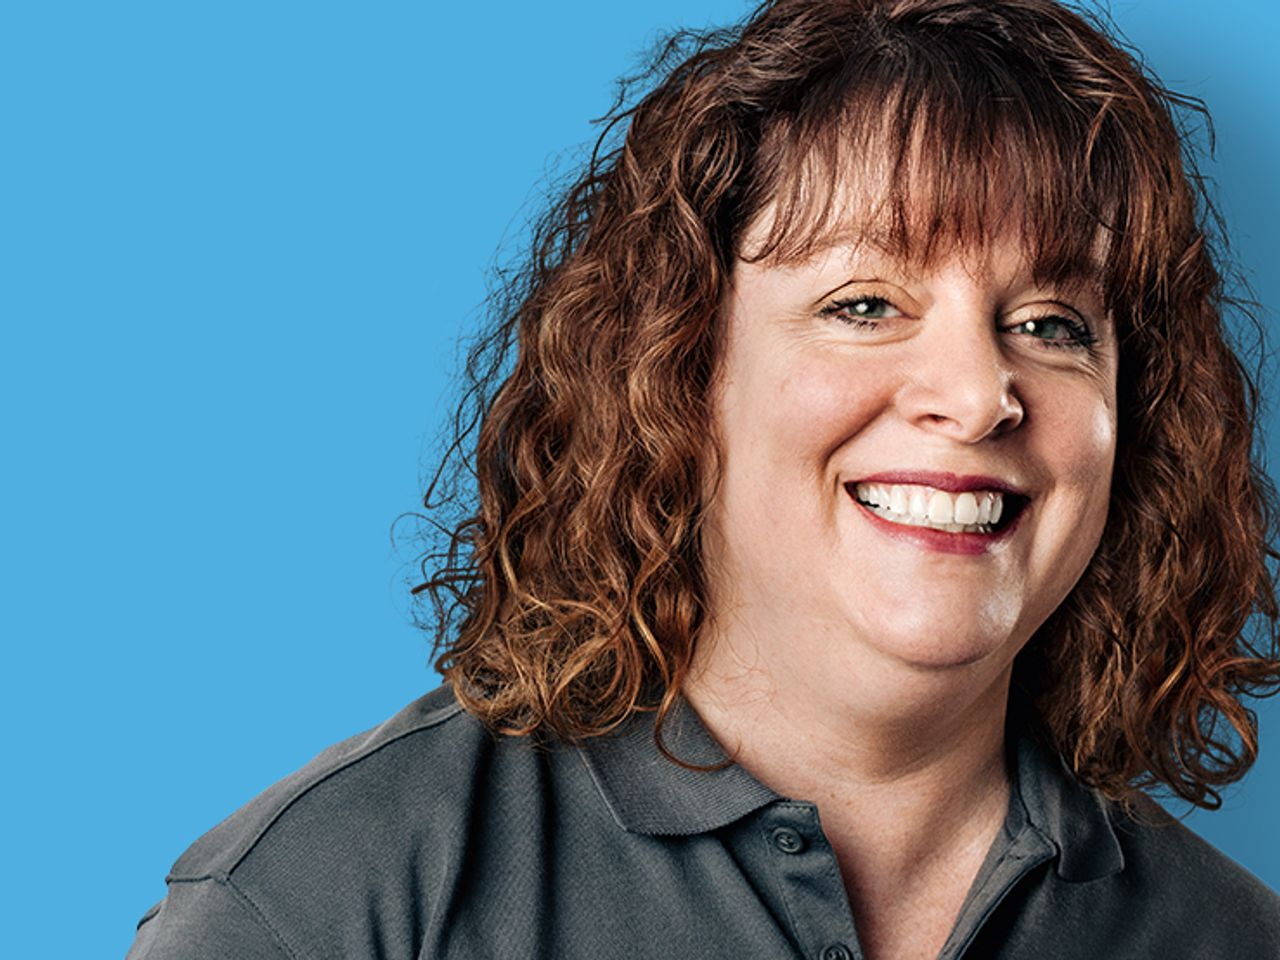 Production manager Lisa Krabbe provides insights into her career path.